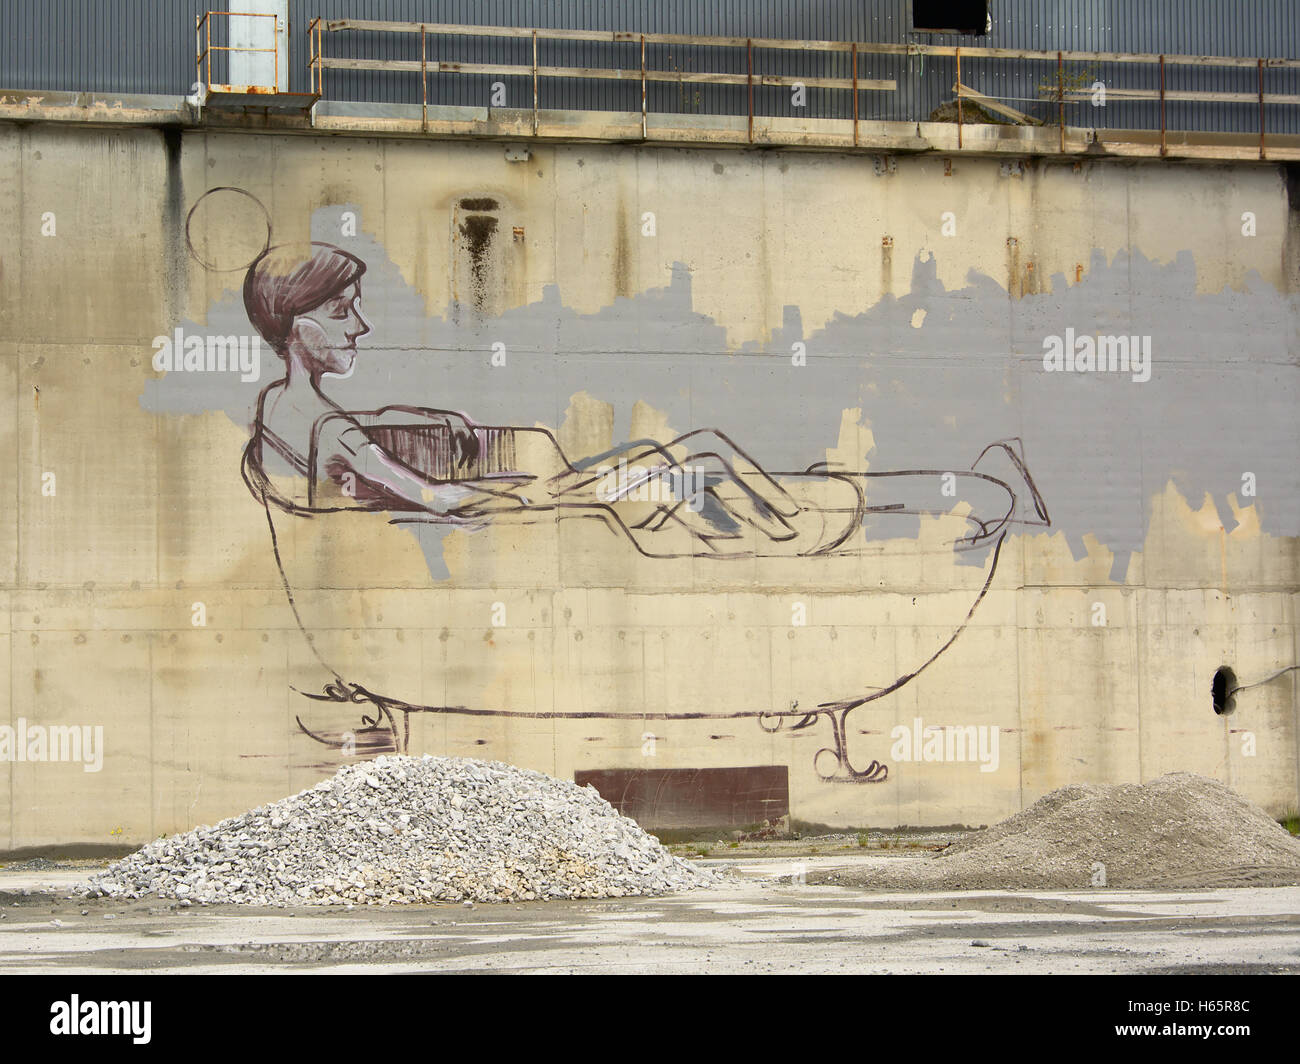 Uncommon graffiti: line drawing of man in bath tub on the wall of industrial building - Stock Image